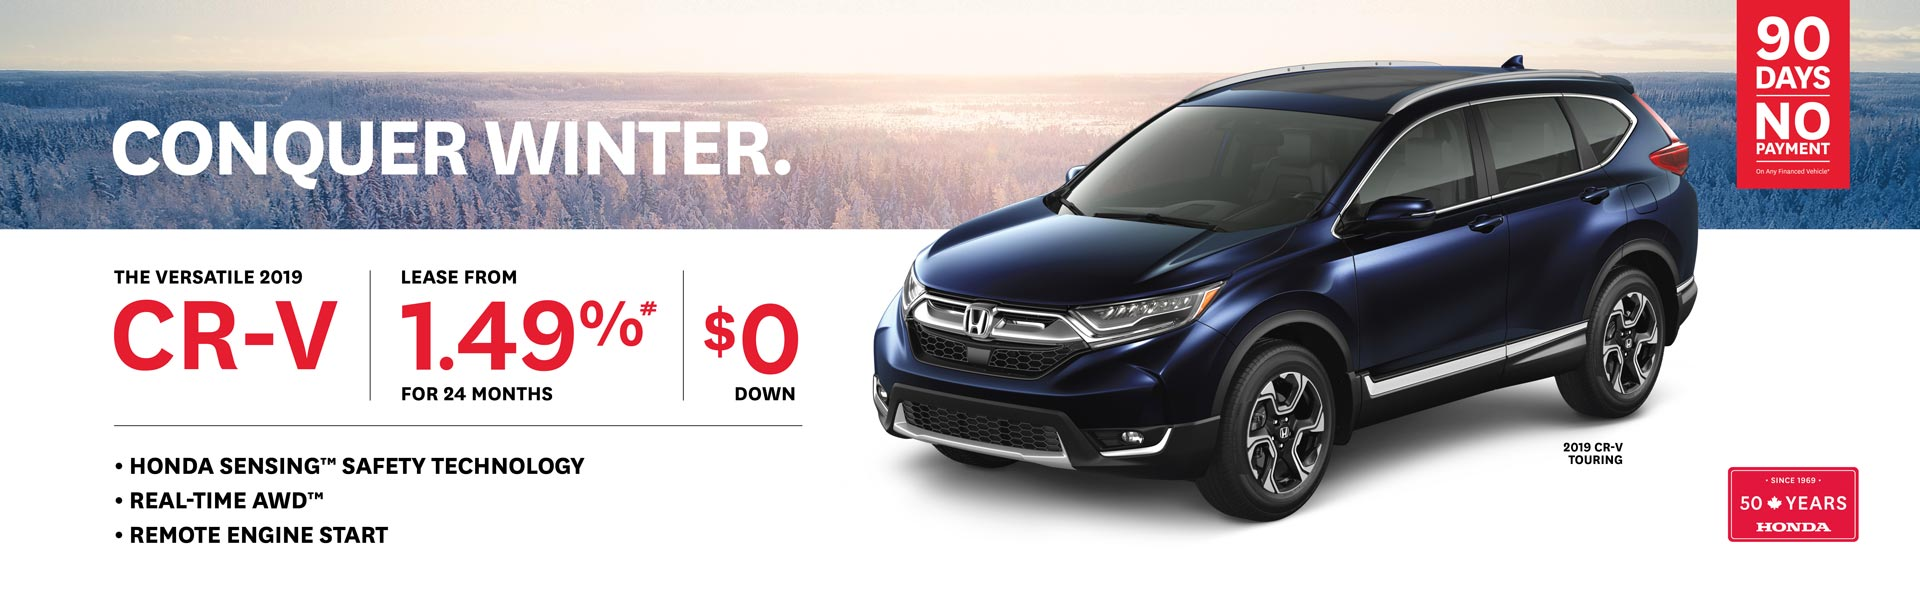 2019 February Honda CR-V OEM Offer